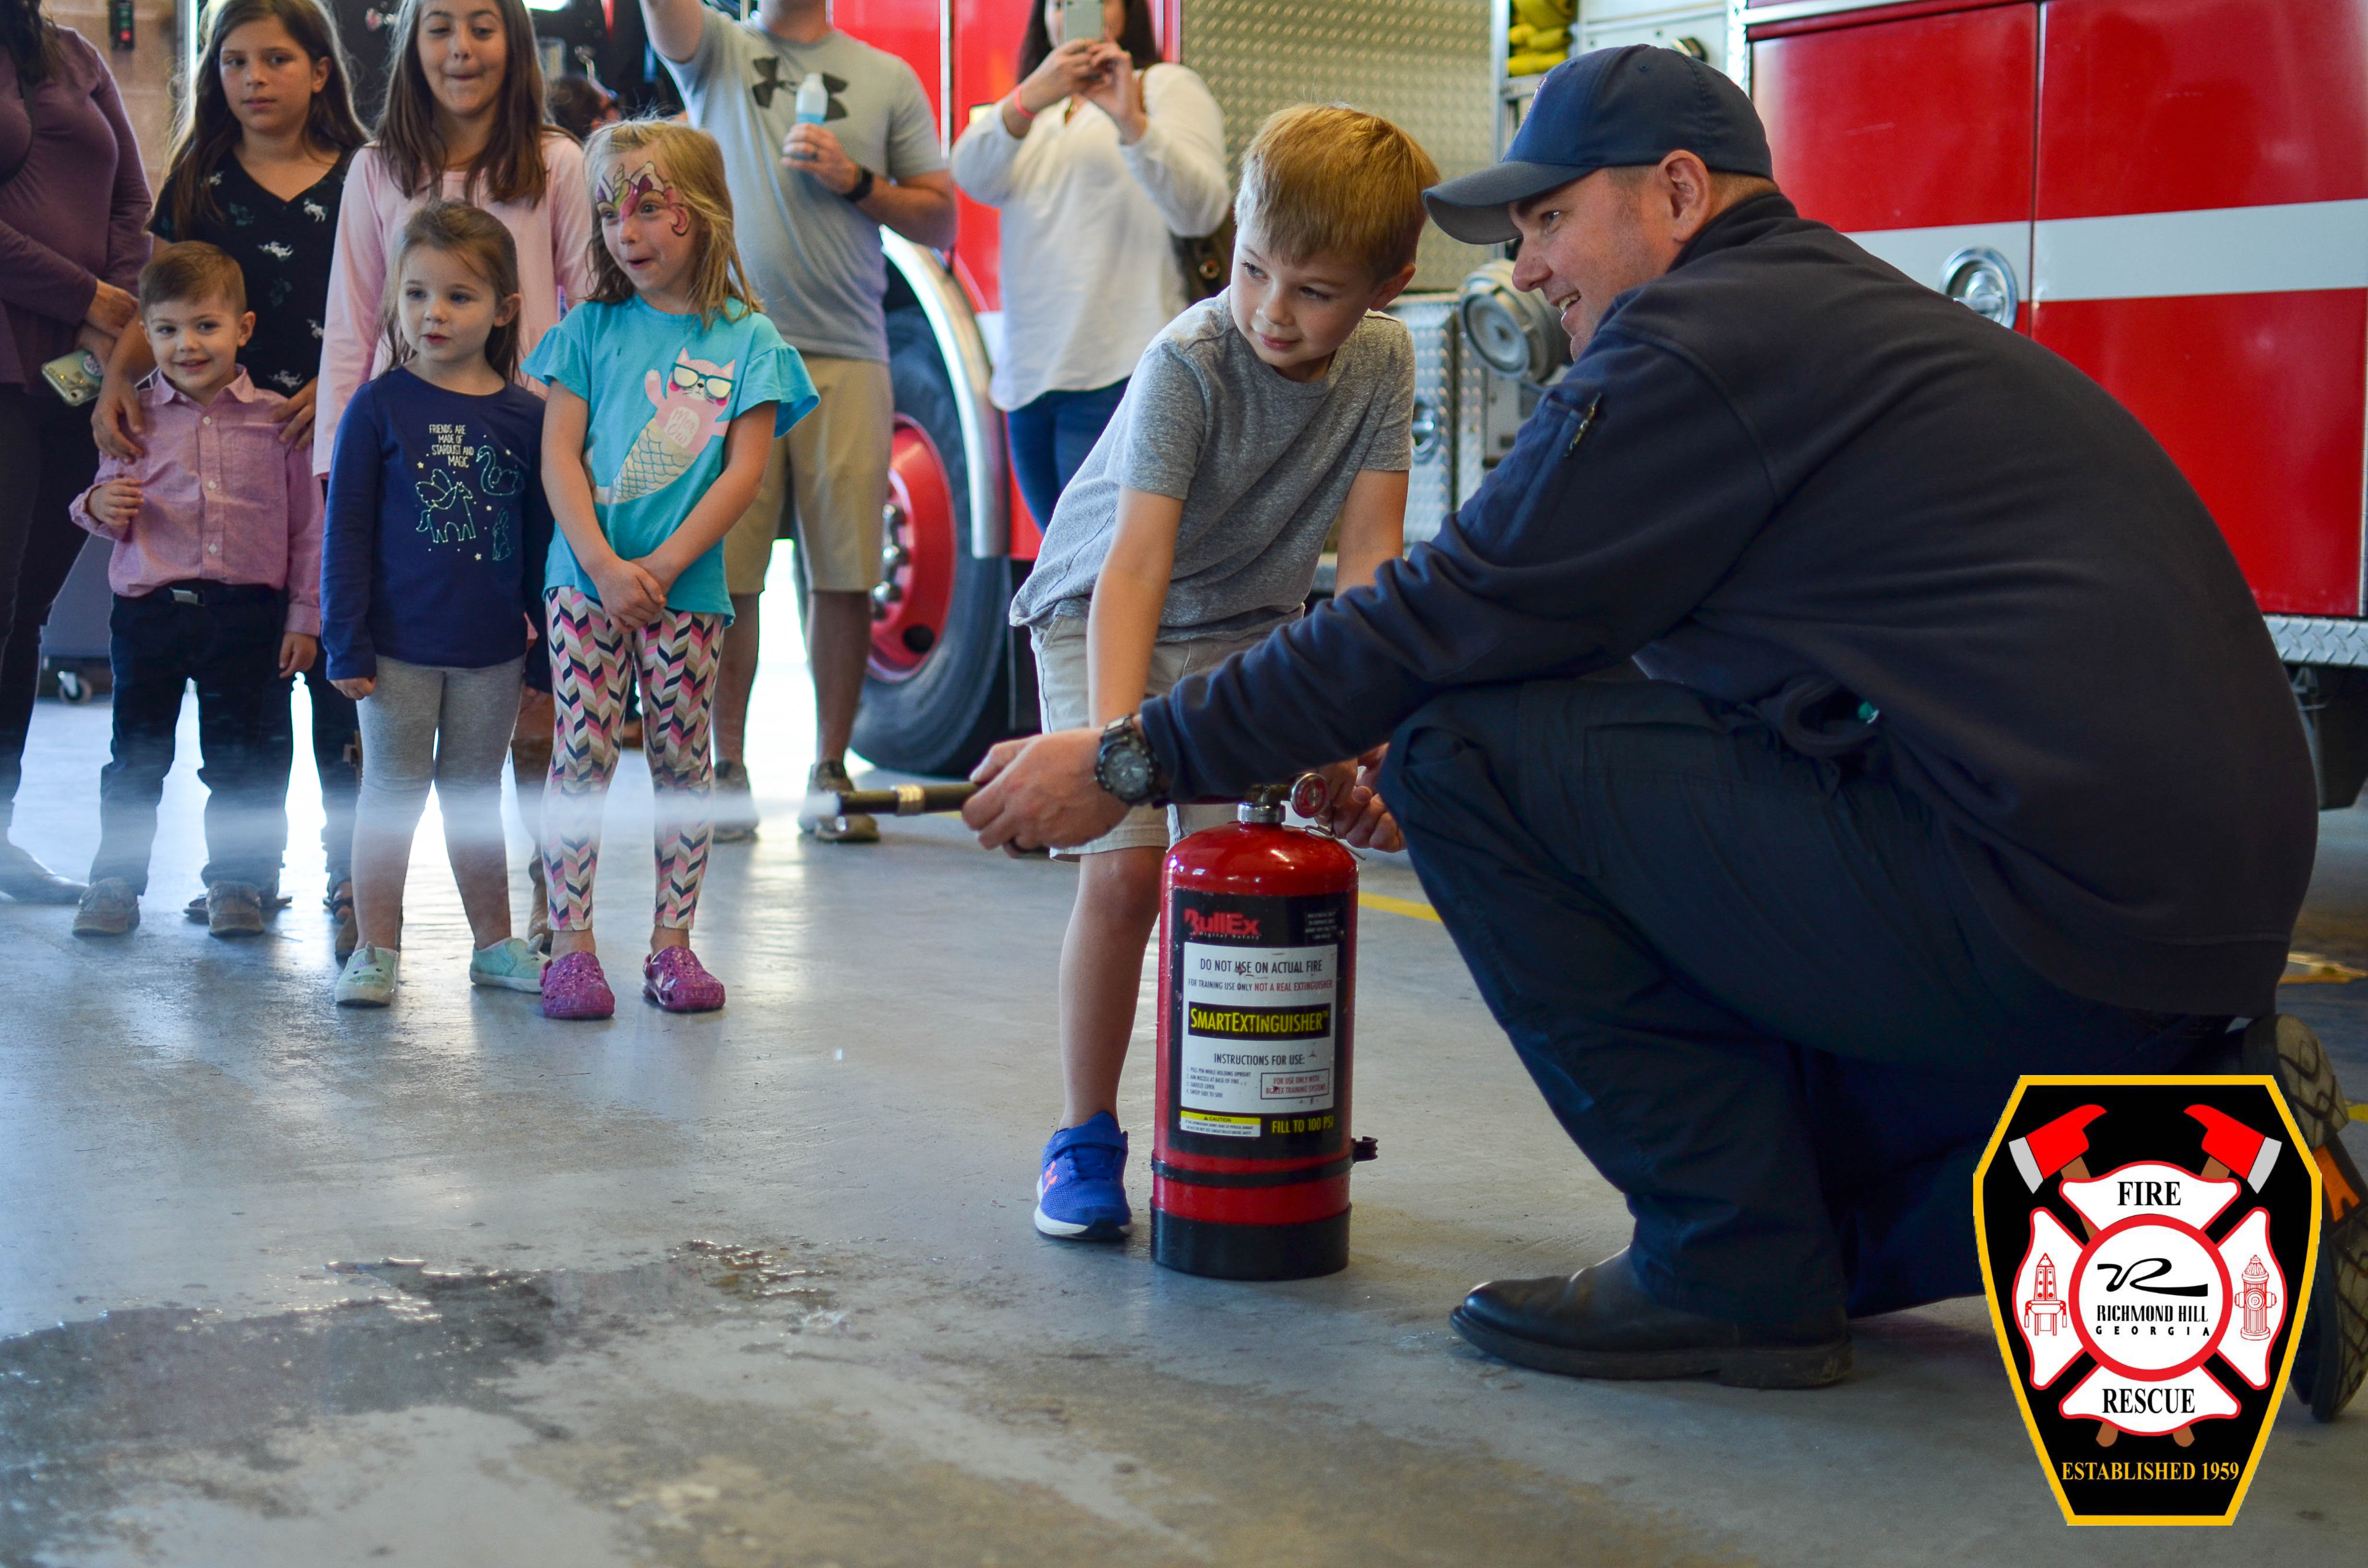 A fire fighter shows a child how to aim a fire extinguisher